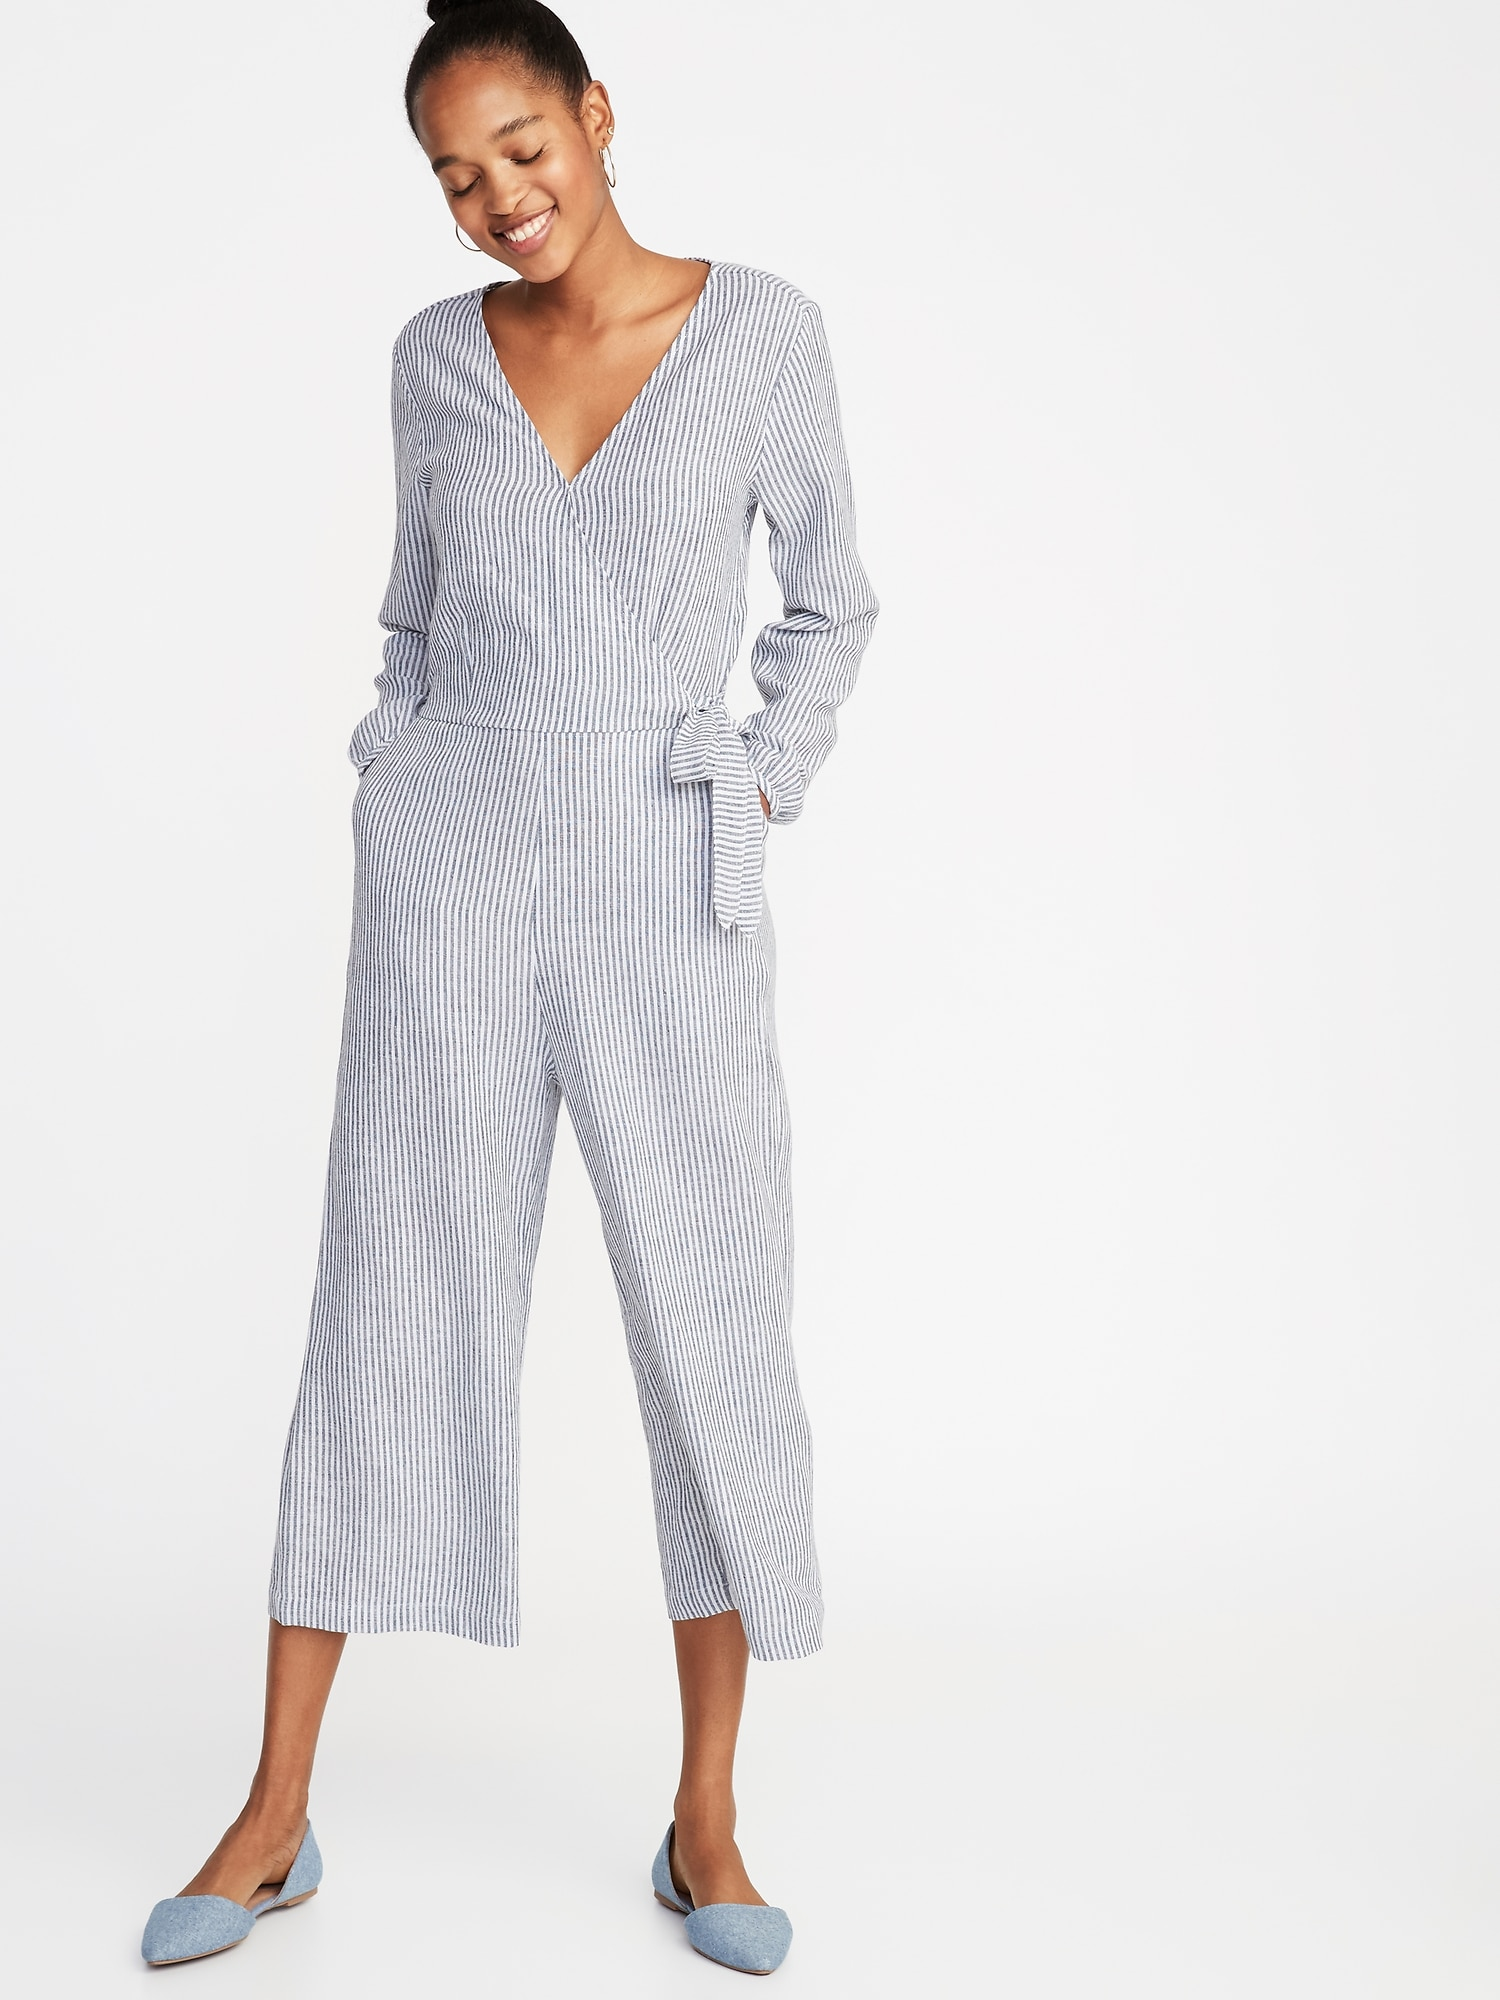 0c4c49960692 Waist-Defined Linen-Blend Striped Jumpsuit for Women